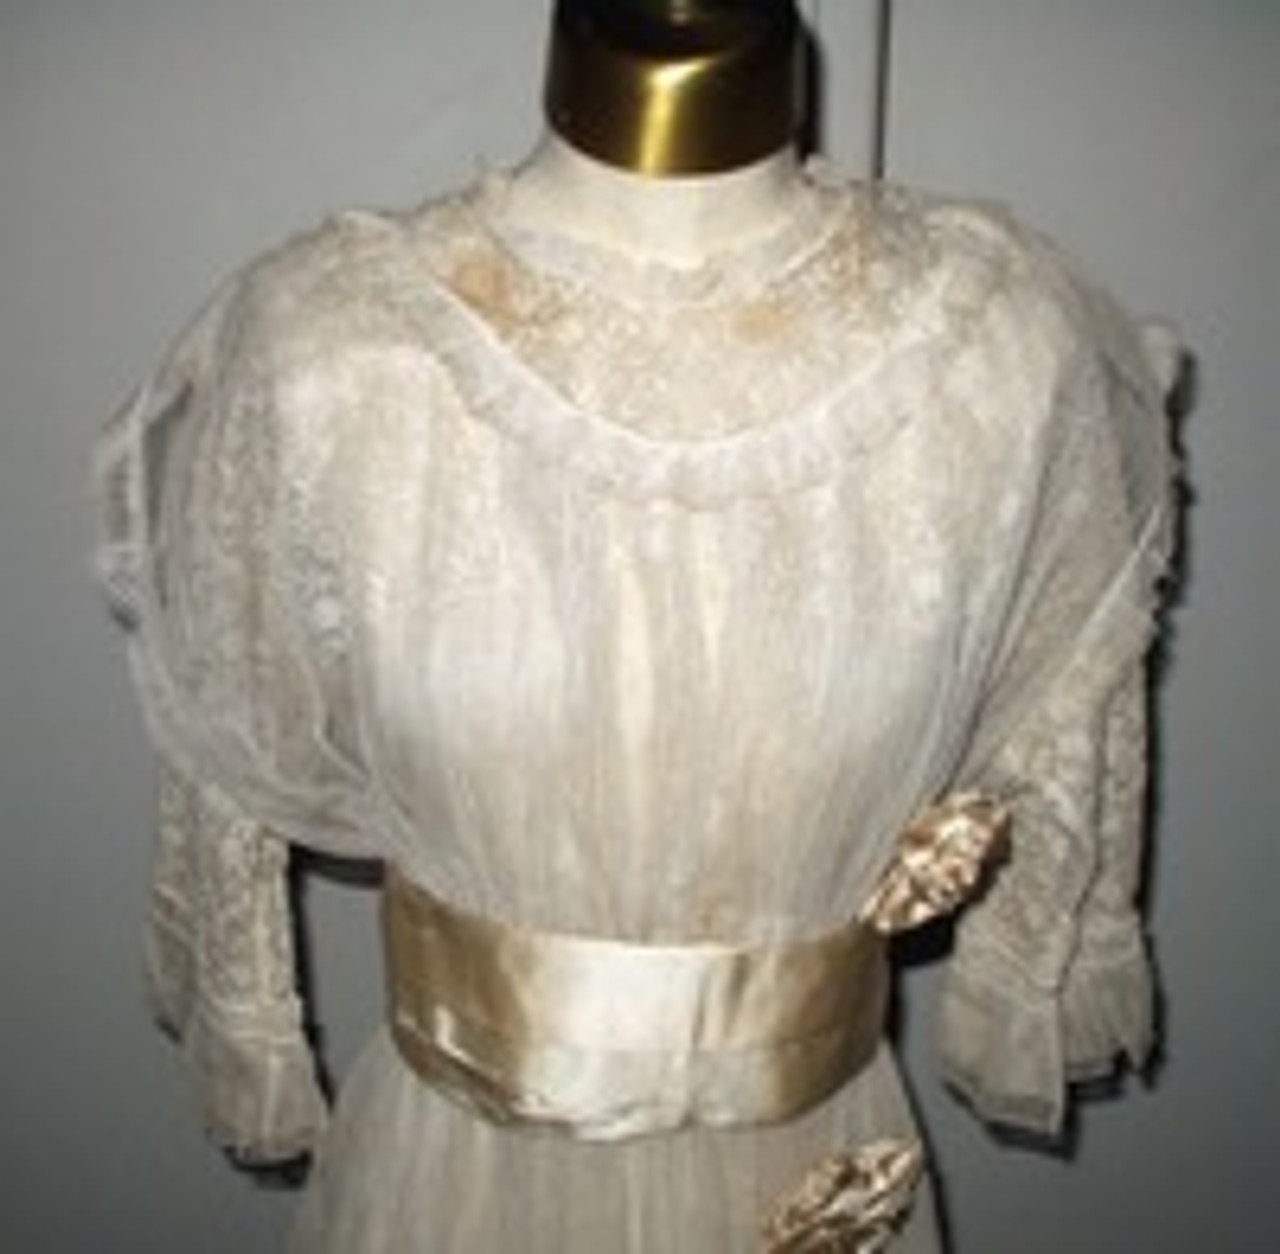 An Edwardian 1912-1915 Wedding Dress Of Tulle Lace And Satin Ribbons